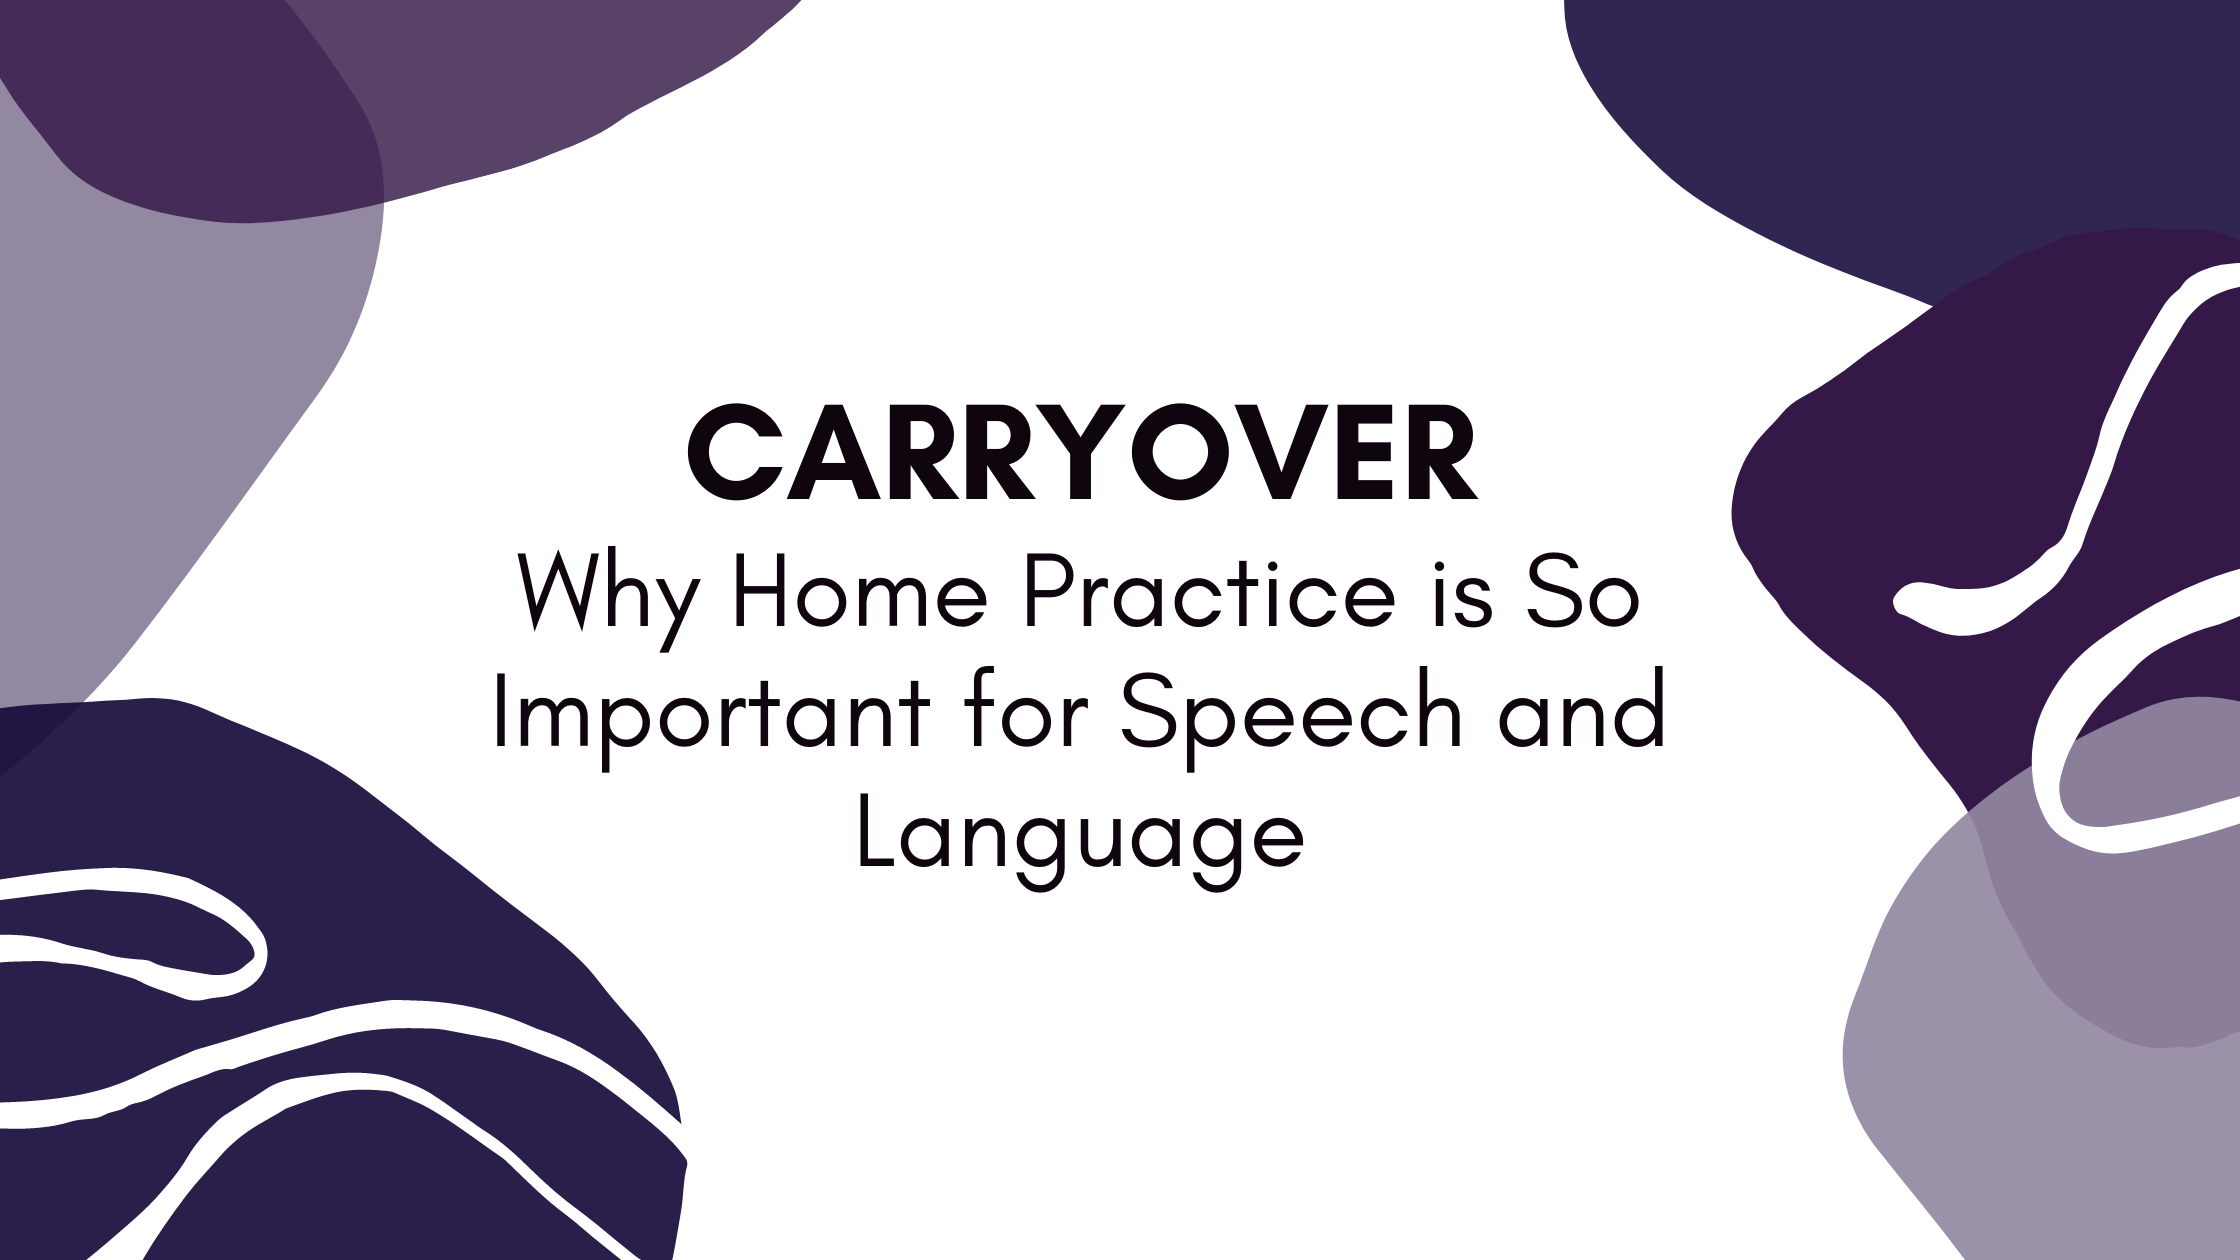 Carryover - Why Home Practice is So Important for Speech and Language